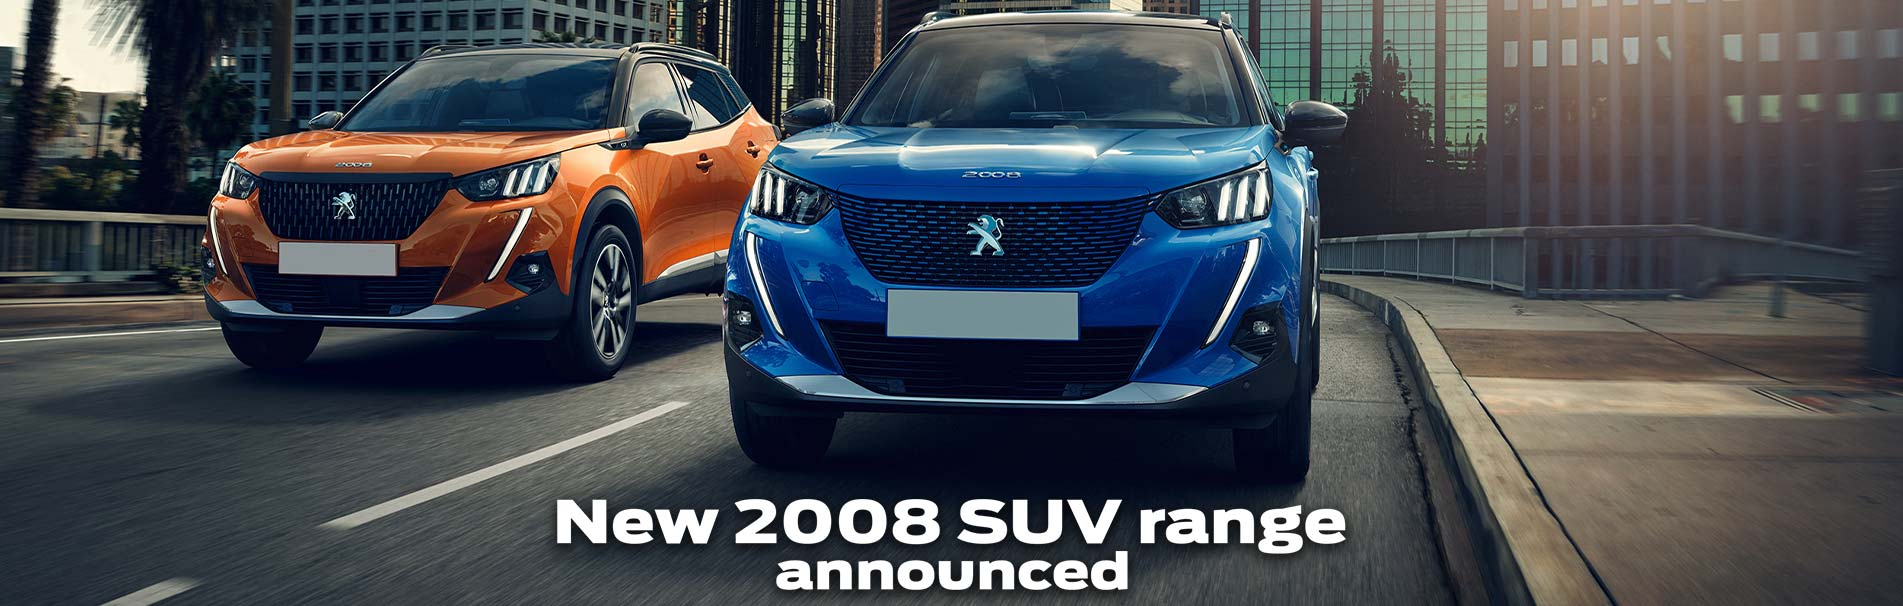 new-peugeot-2008-suv-announced-sli-0007